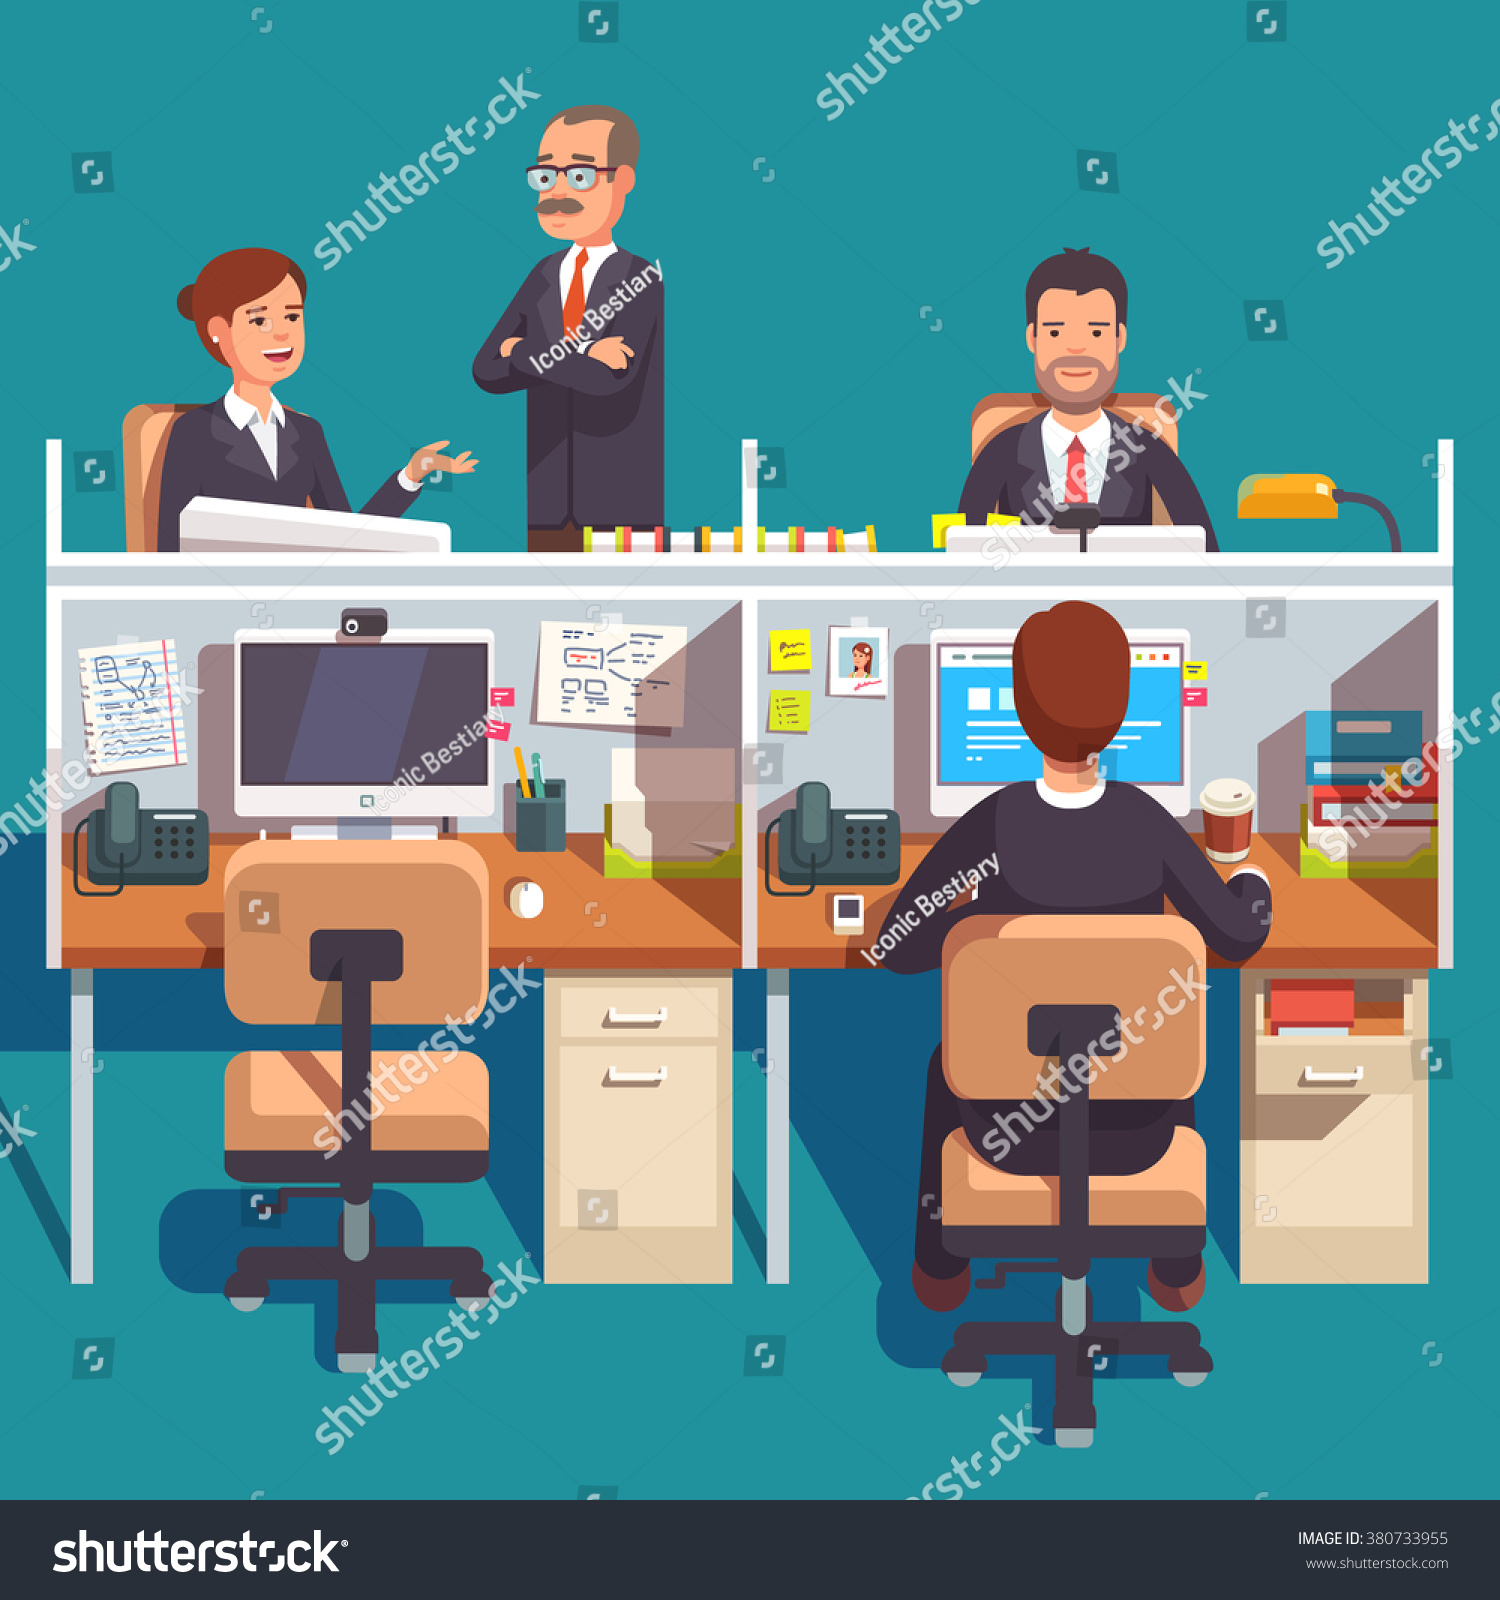 cubicle office work space with employees at the desks flat style modern vector